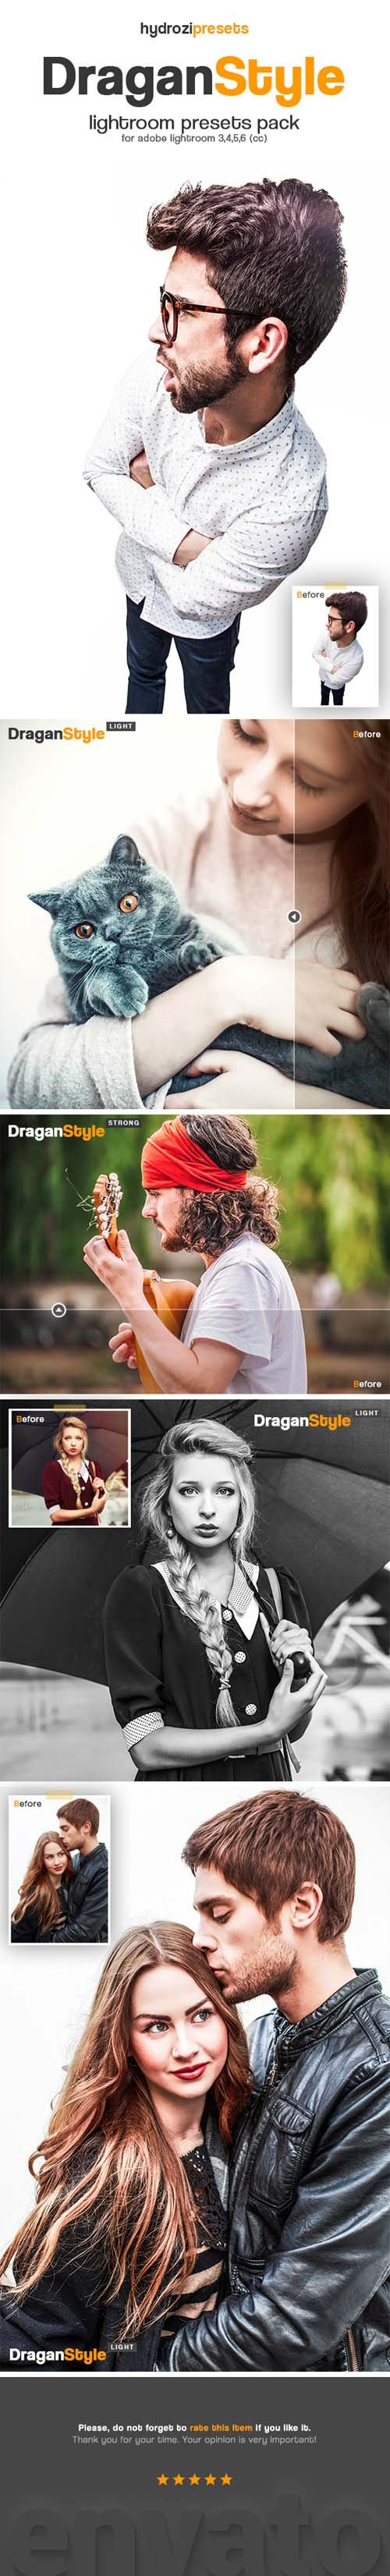 GR - Dragan Style Lightroom Presets 19738342